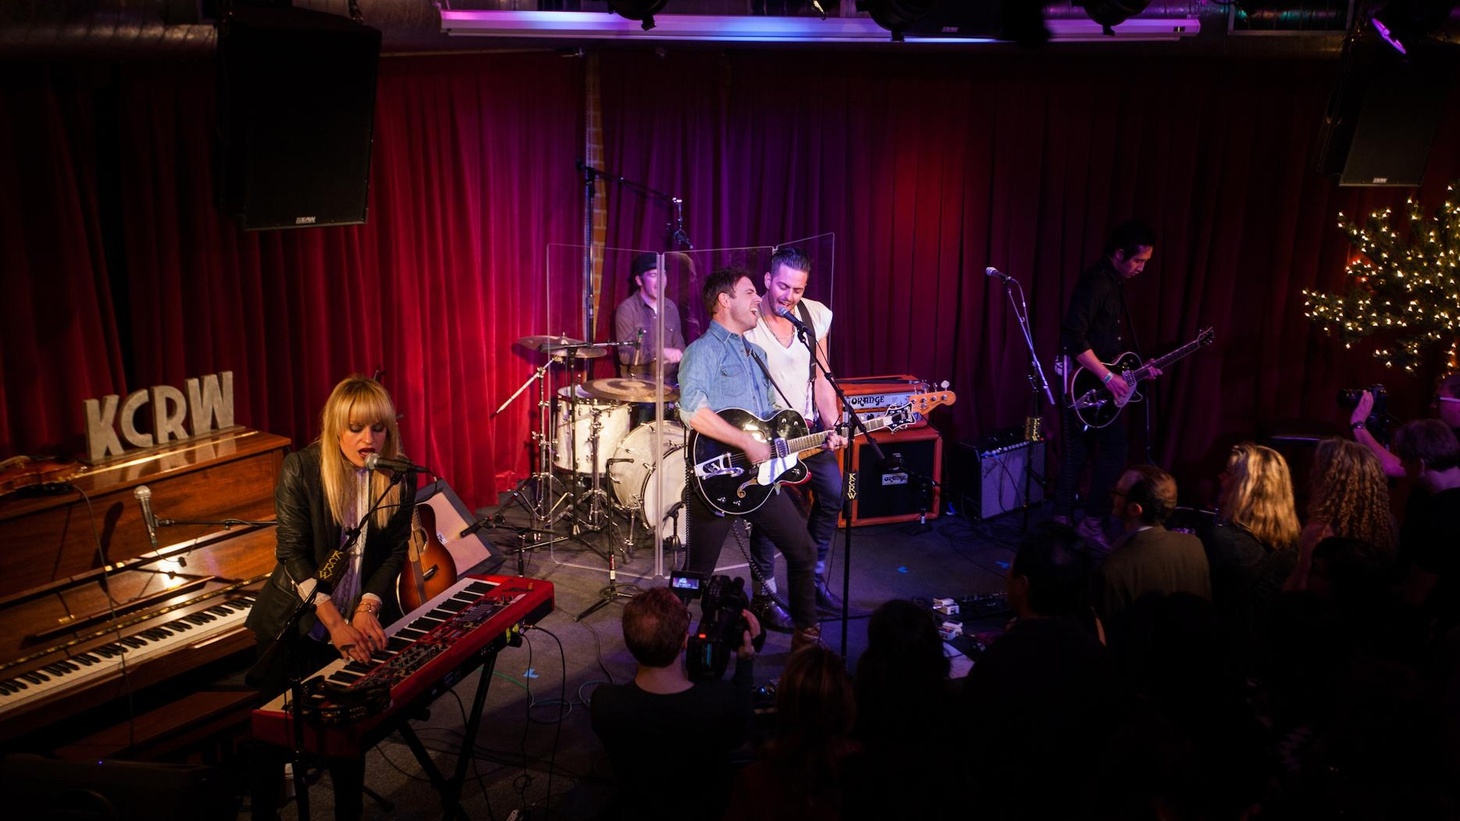 The Airborne Toxic Event have been road warriors over the last few years and returned to LA to present some of their new songs in a live set at KCRW's Apogee Sessions.